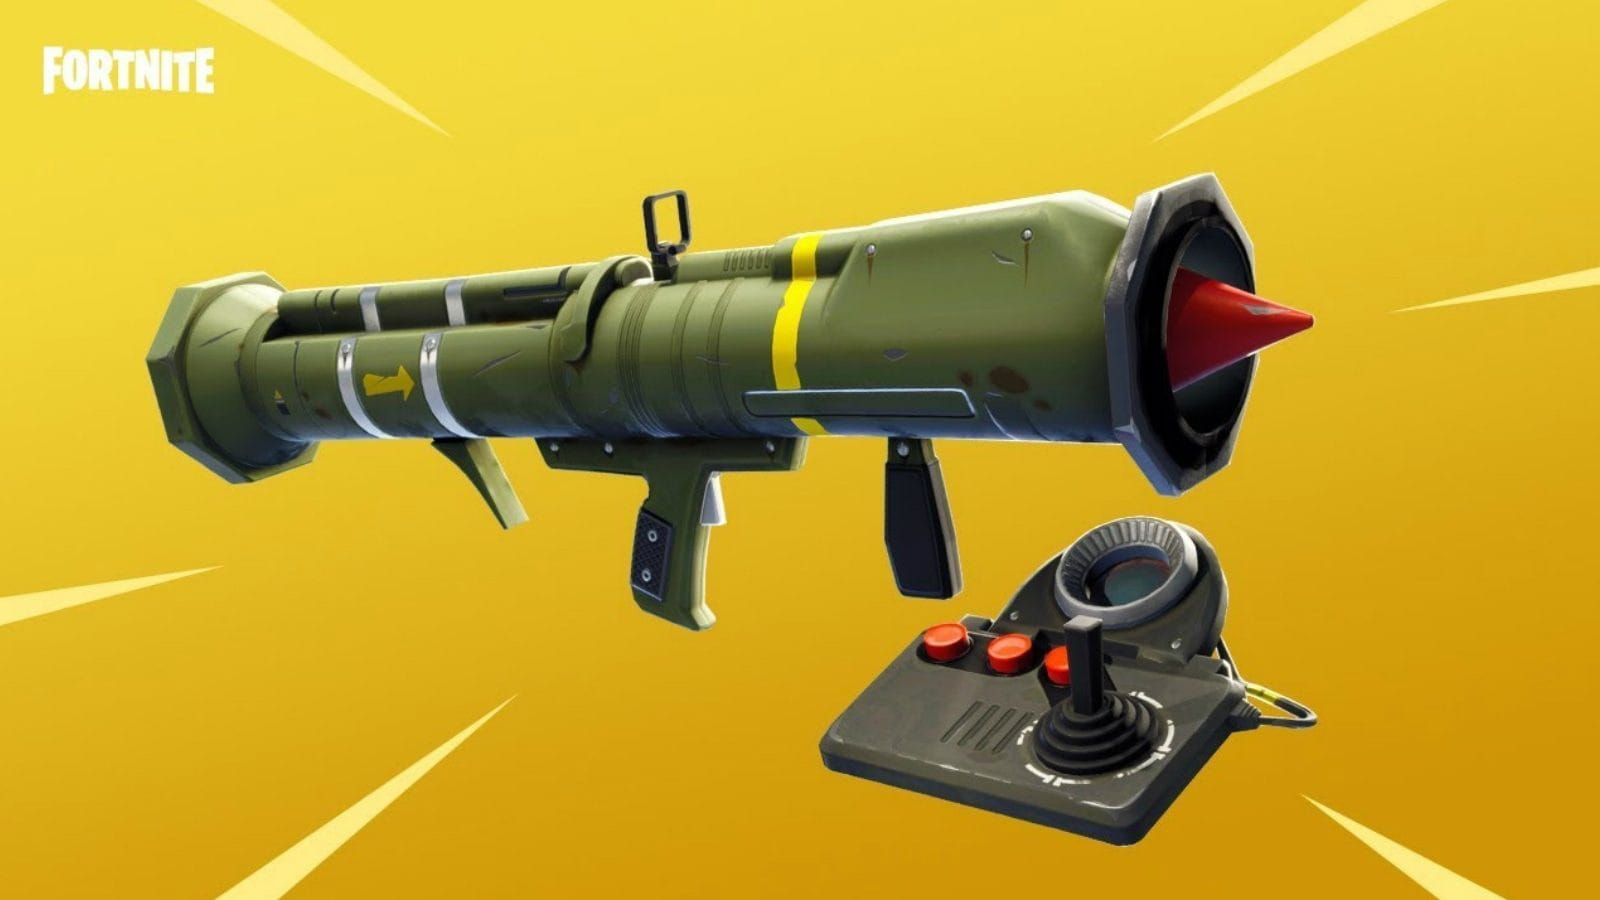 Fortnite Will Bring Back Guided Missiles In A Softer